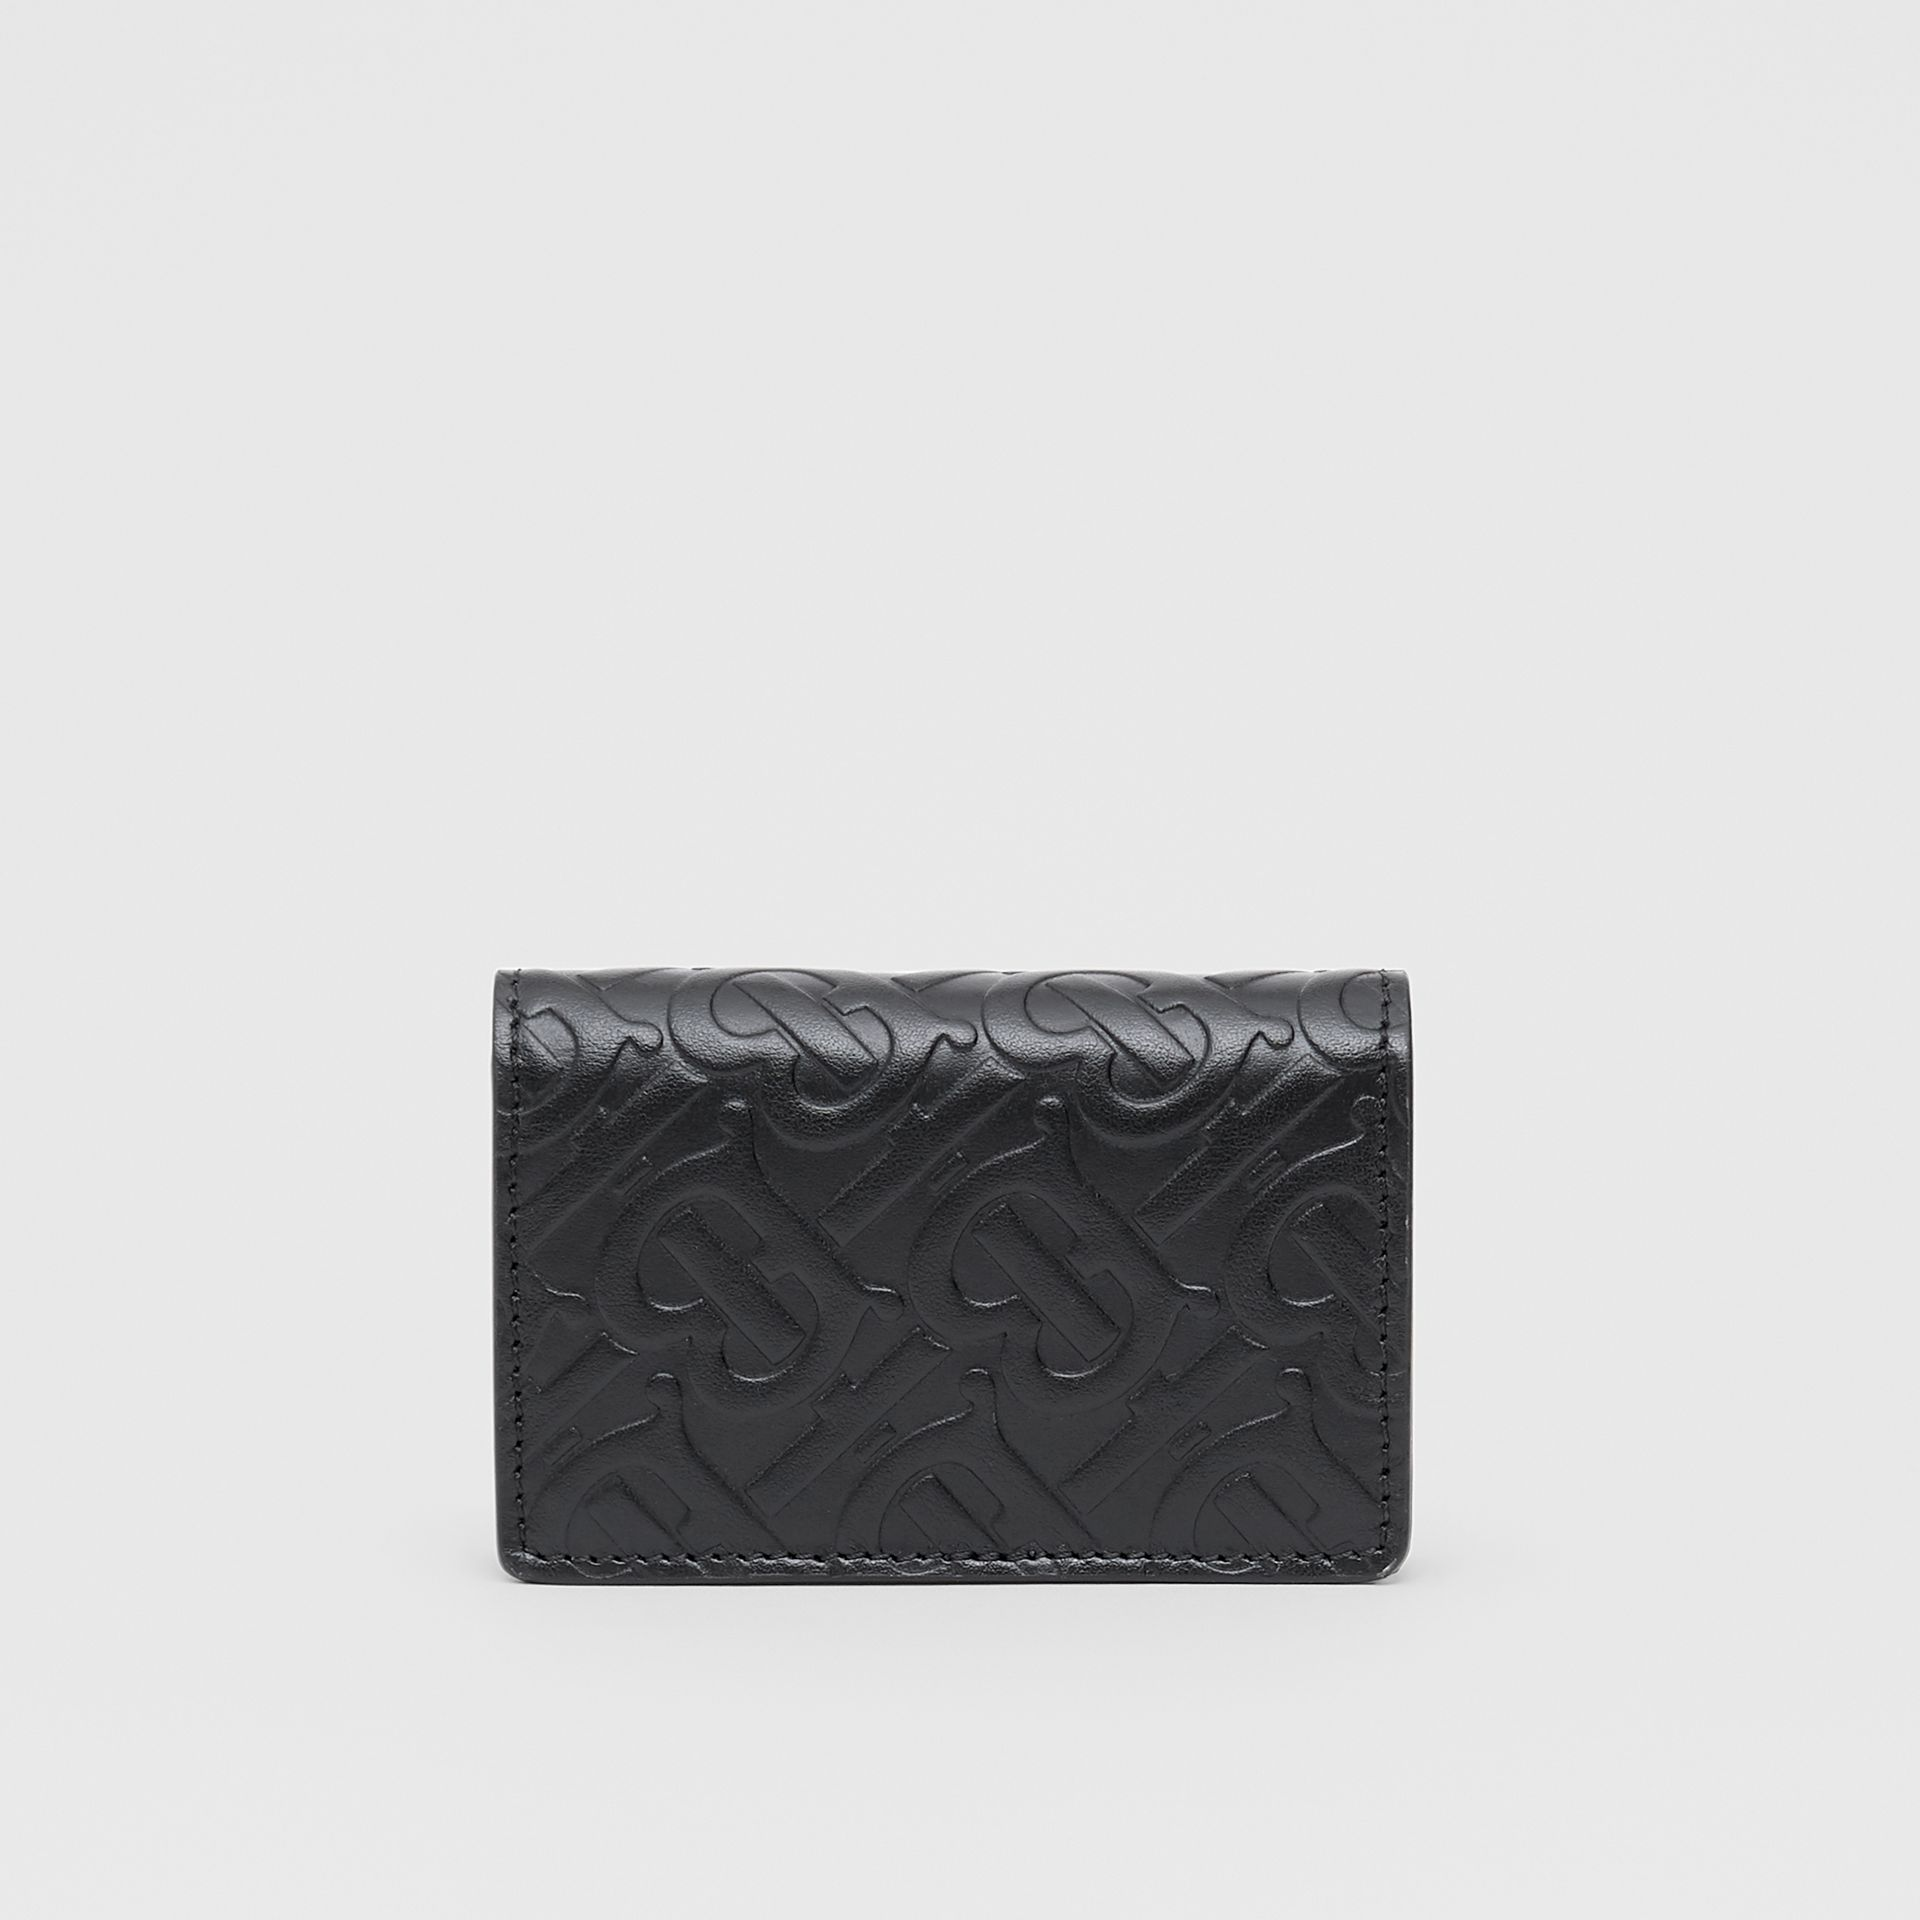 Monogram Leather Card Case in Black | Burberry - gallery image 5